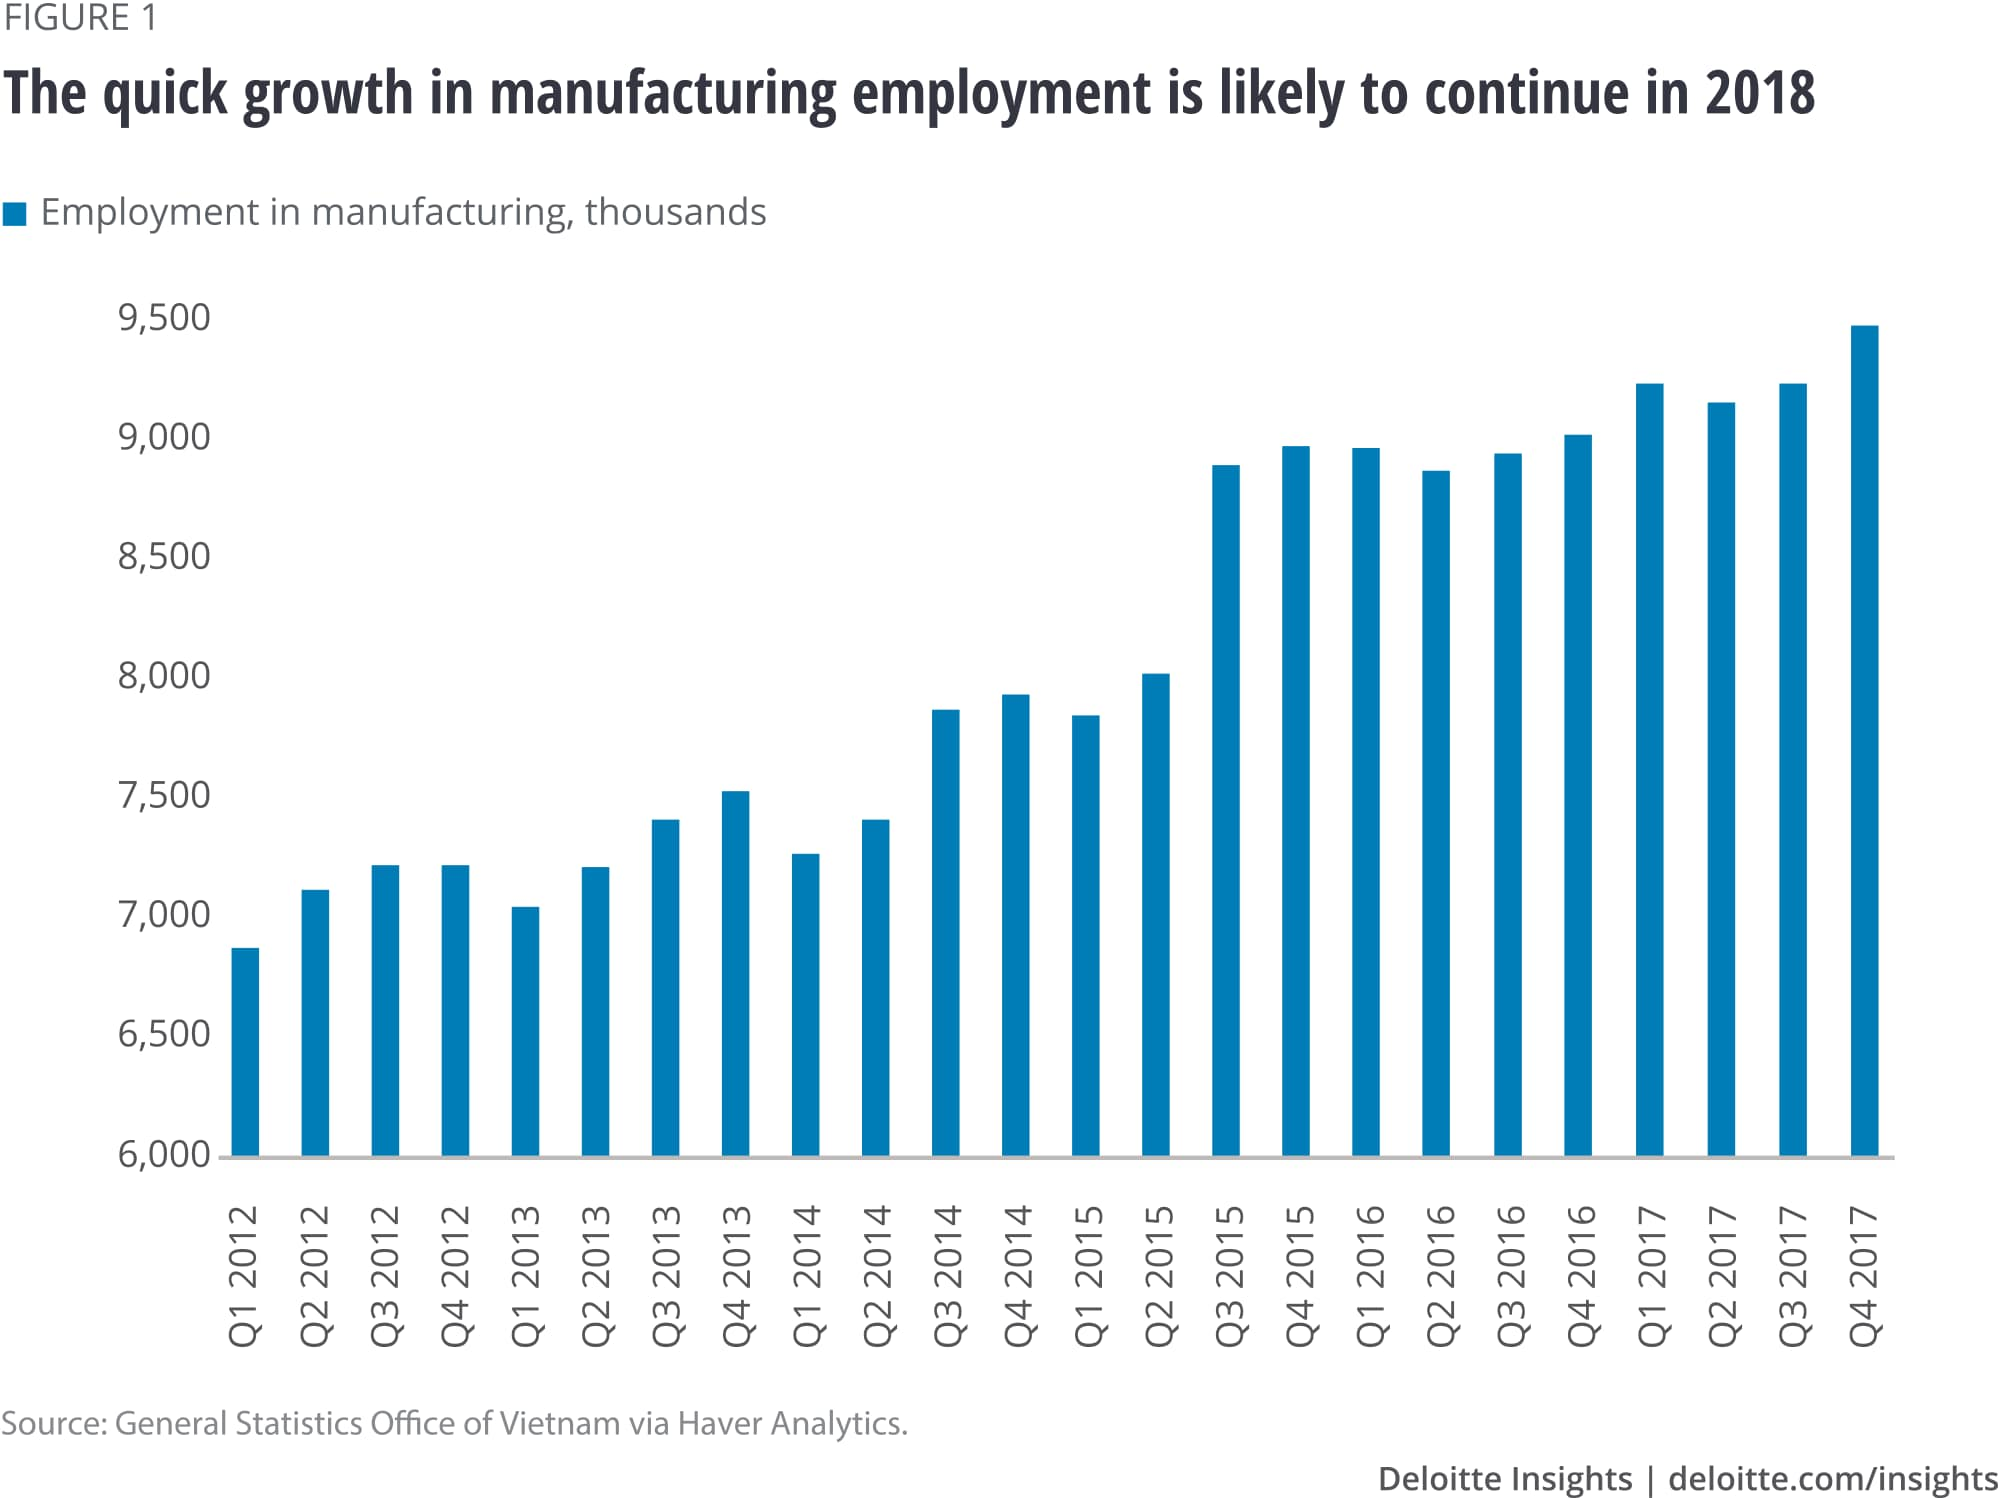 The quick growth in manufacturing employment is likely to continue in 2018